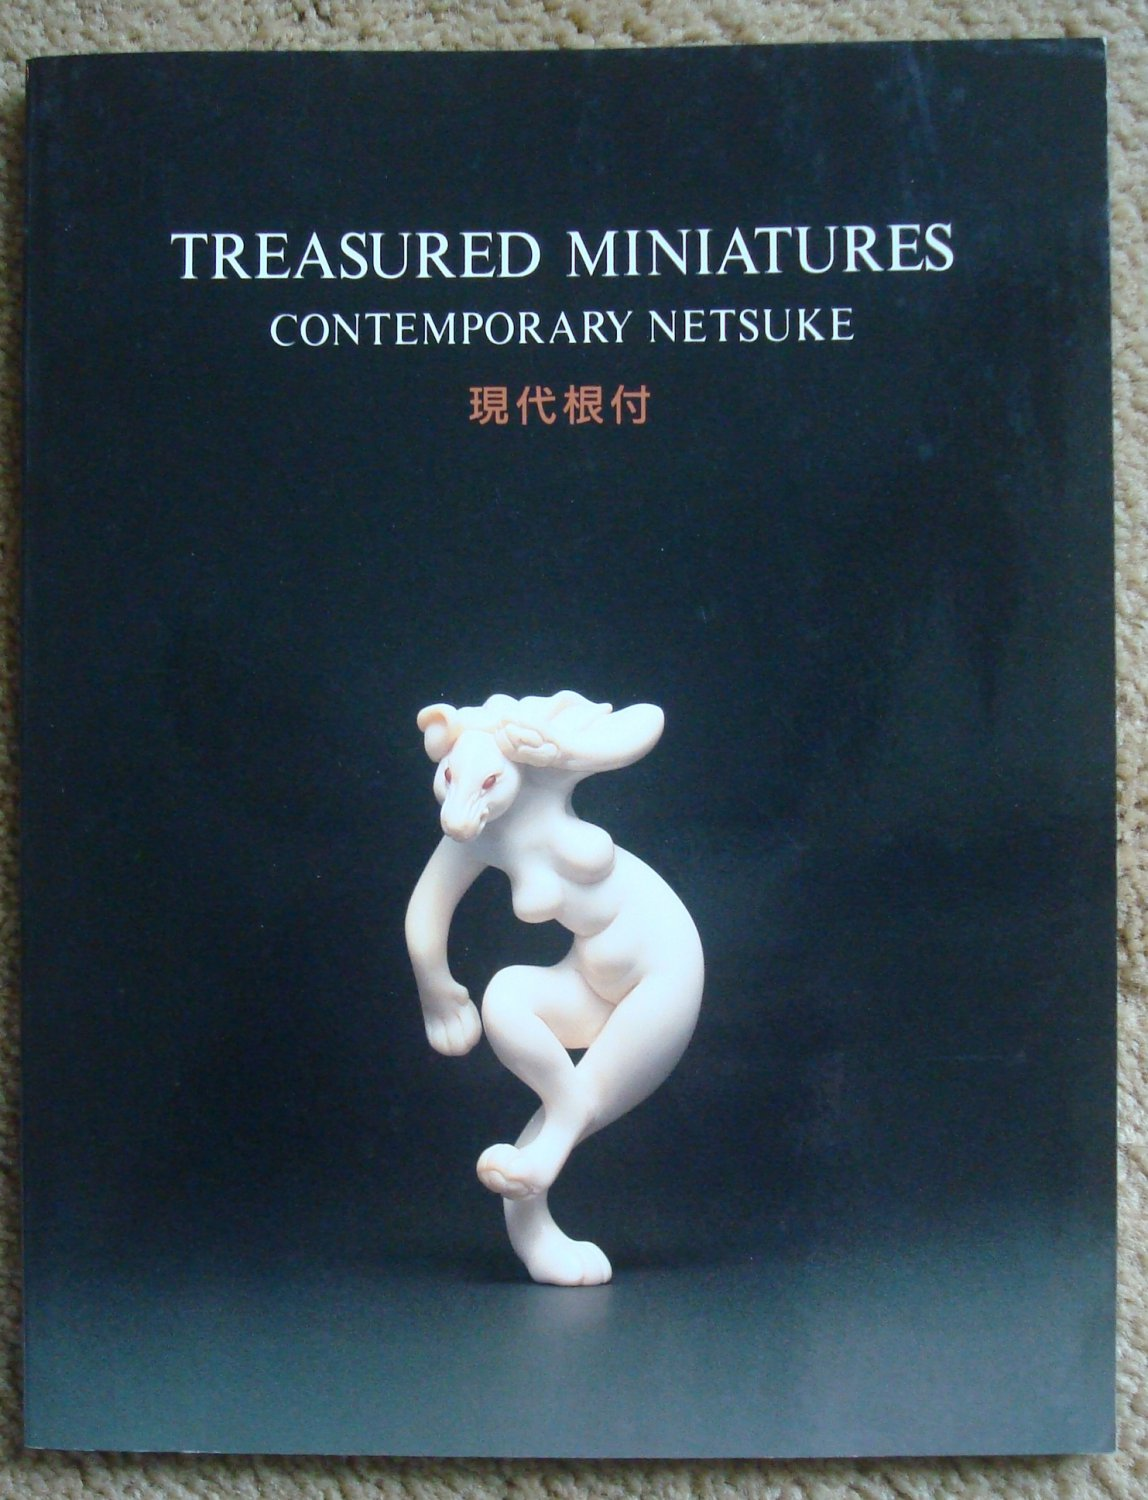 Treasured Miniatures: Contemporary Netsuke